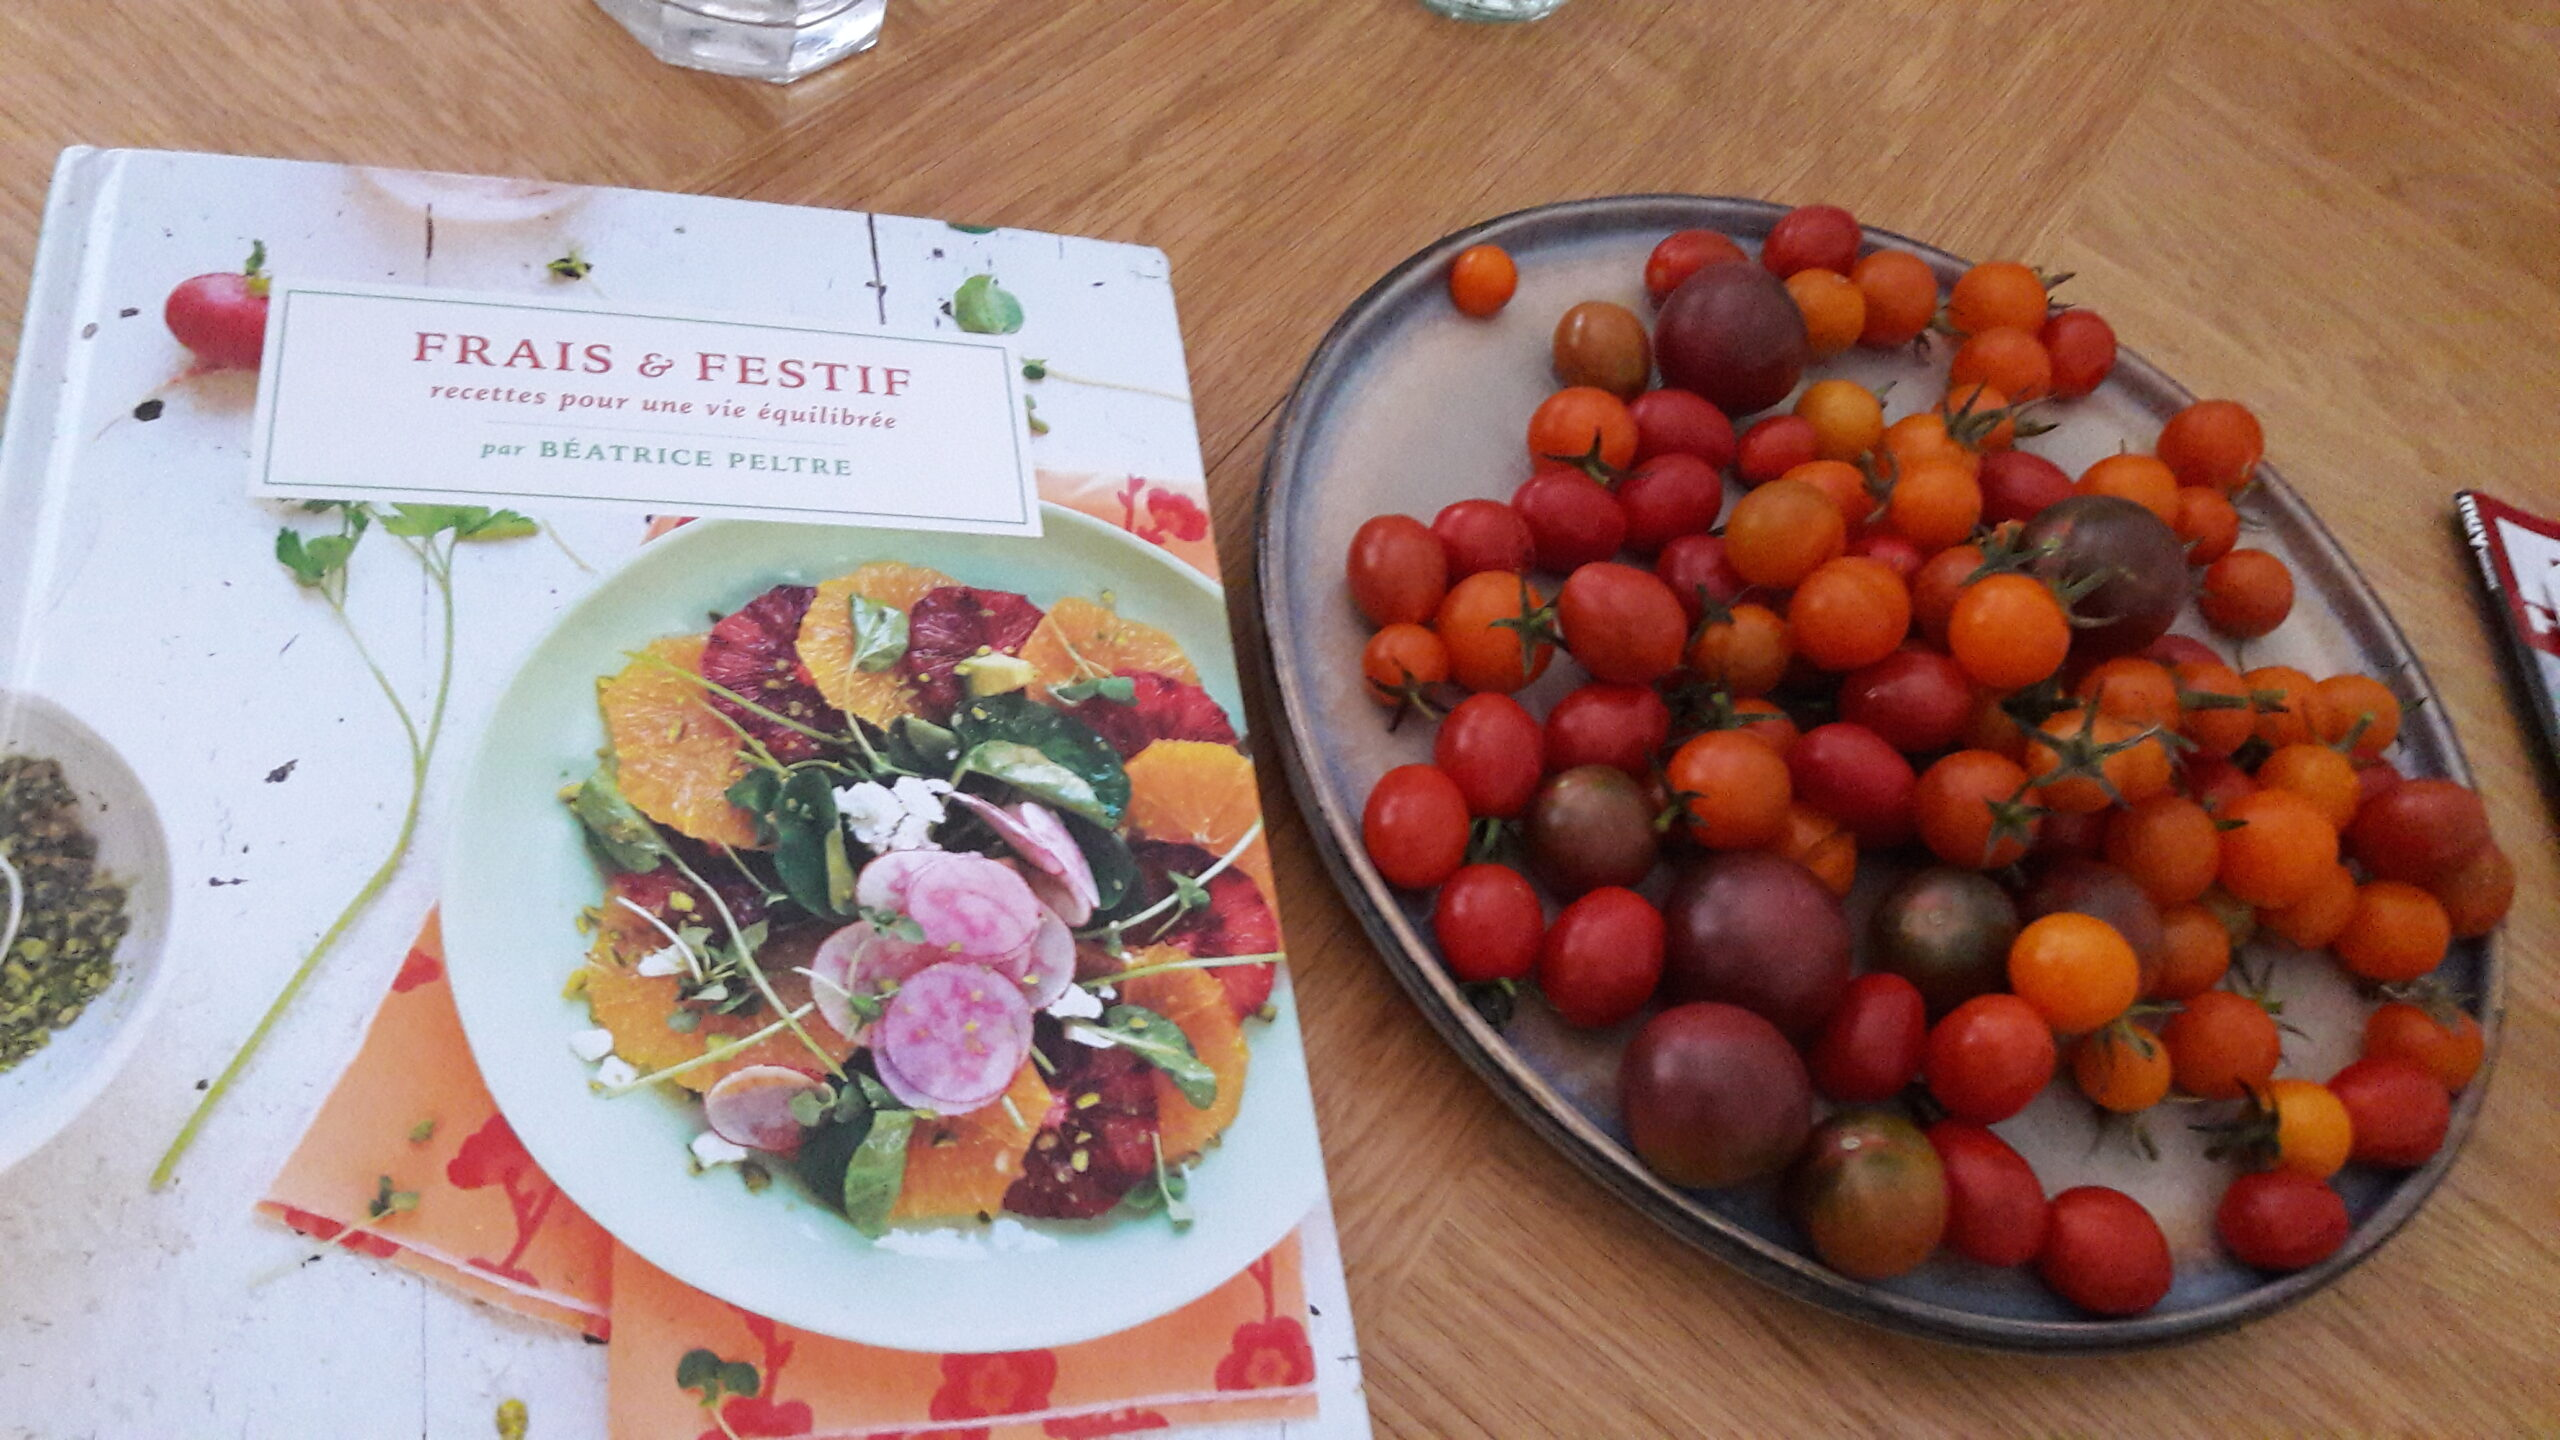 My French Family Table cookbook and a plate of cherry tomatoes for tomato tatin